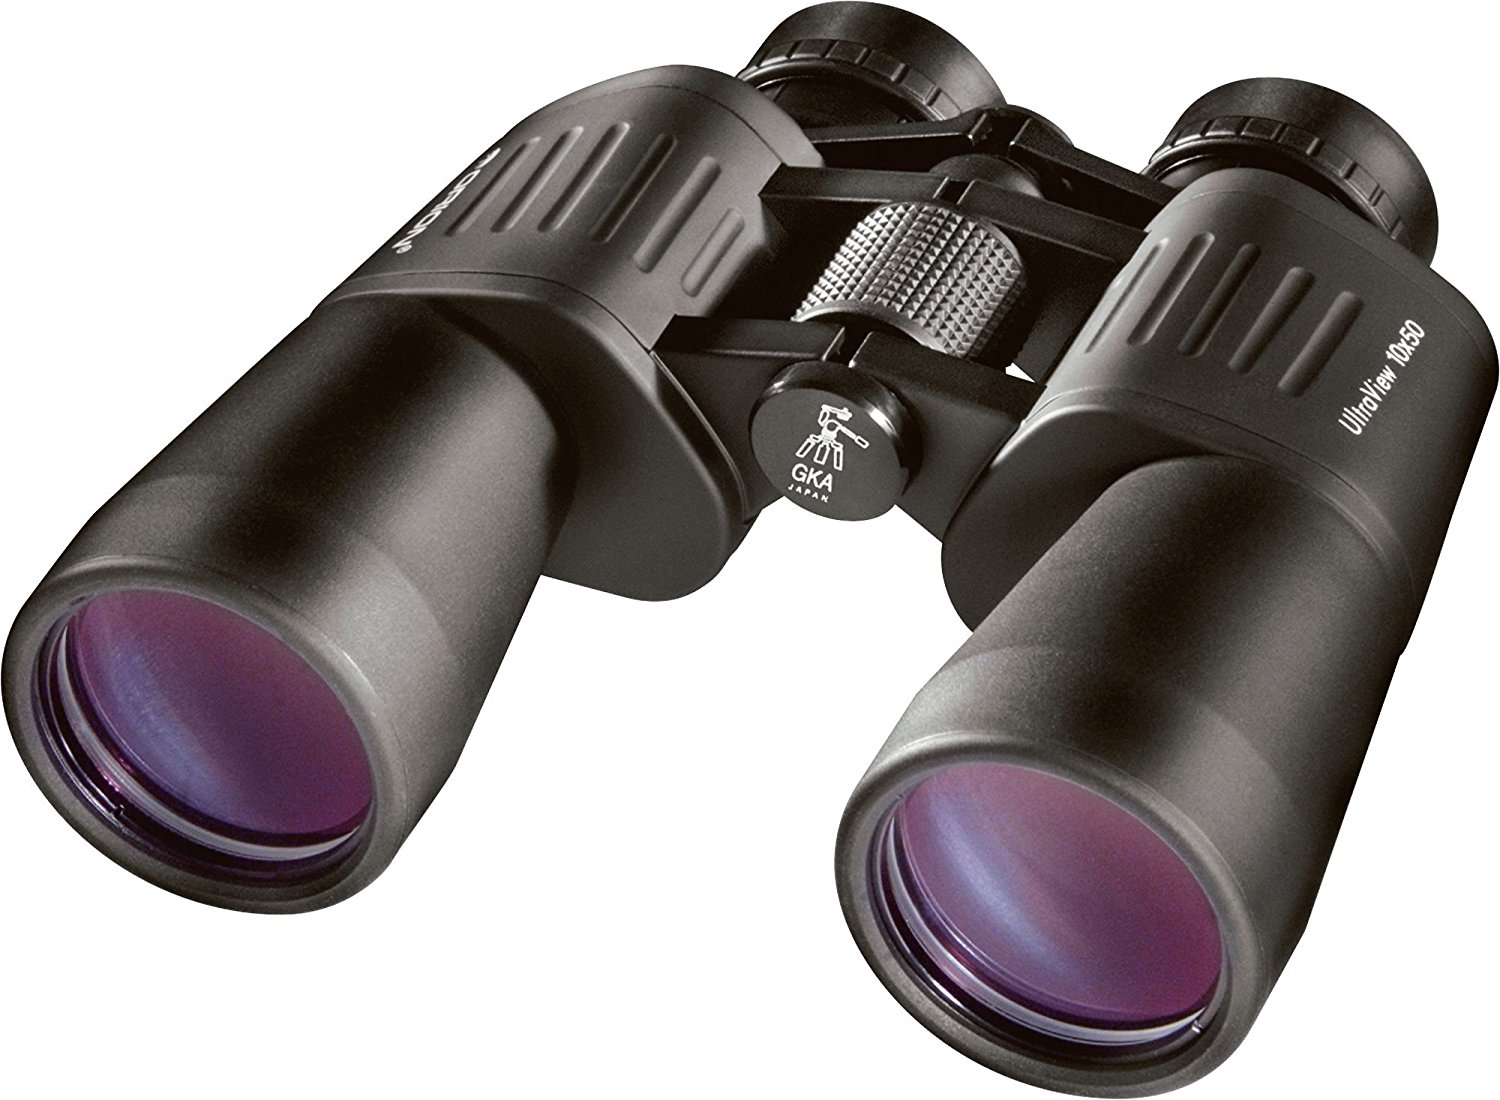 ORION-Orion 09351 UltraView 10x50 Wide-Angle Binoculars